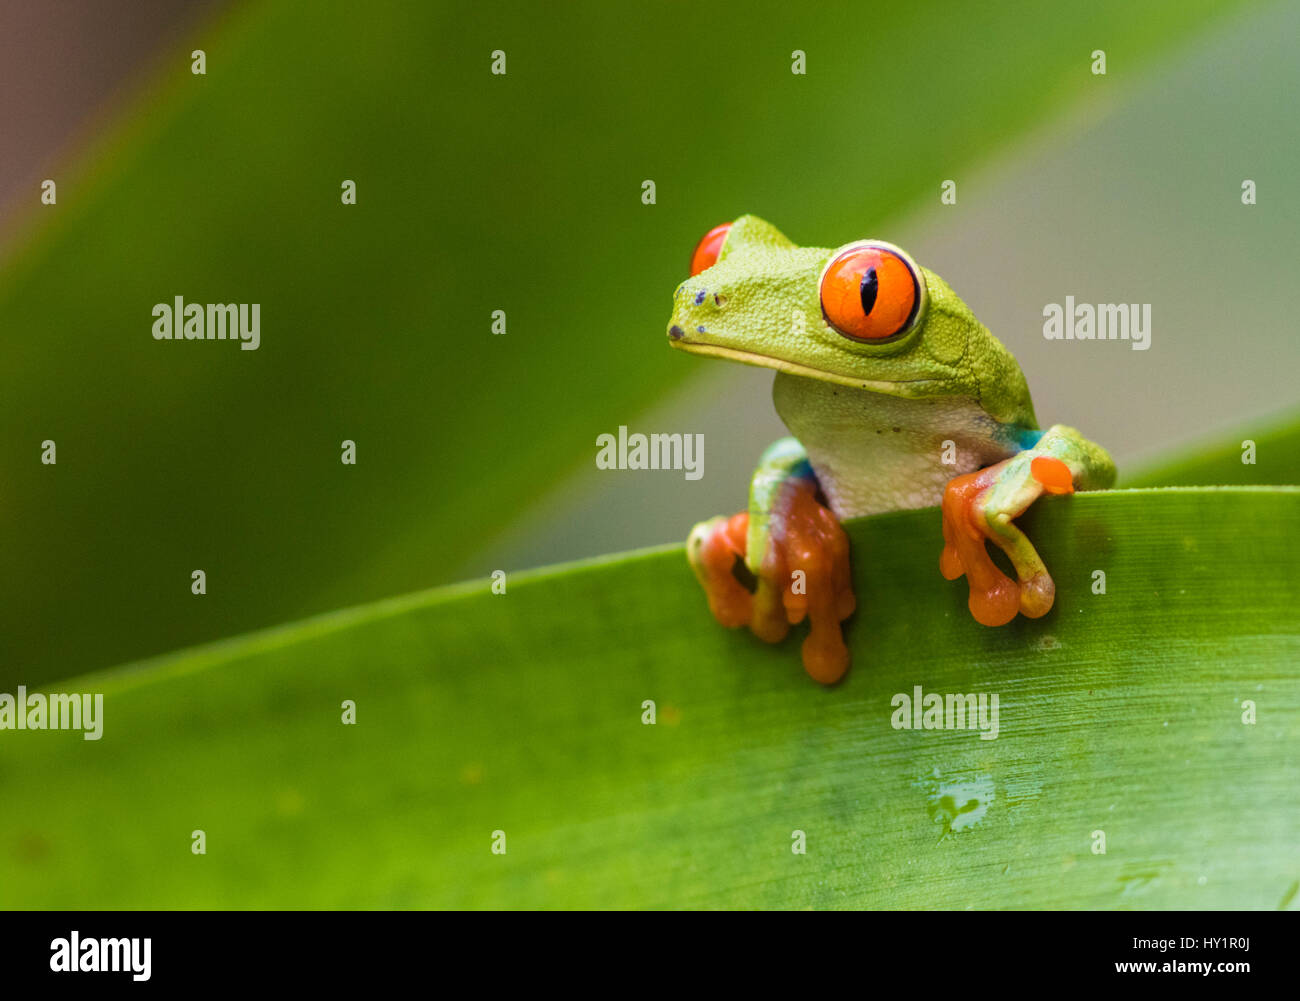 Red-eyed tree frog, Agalychnis callidryas, climbing on a leaf, looking to the side, Laguna del Lagarto, Boca Tapada, - Stock Image